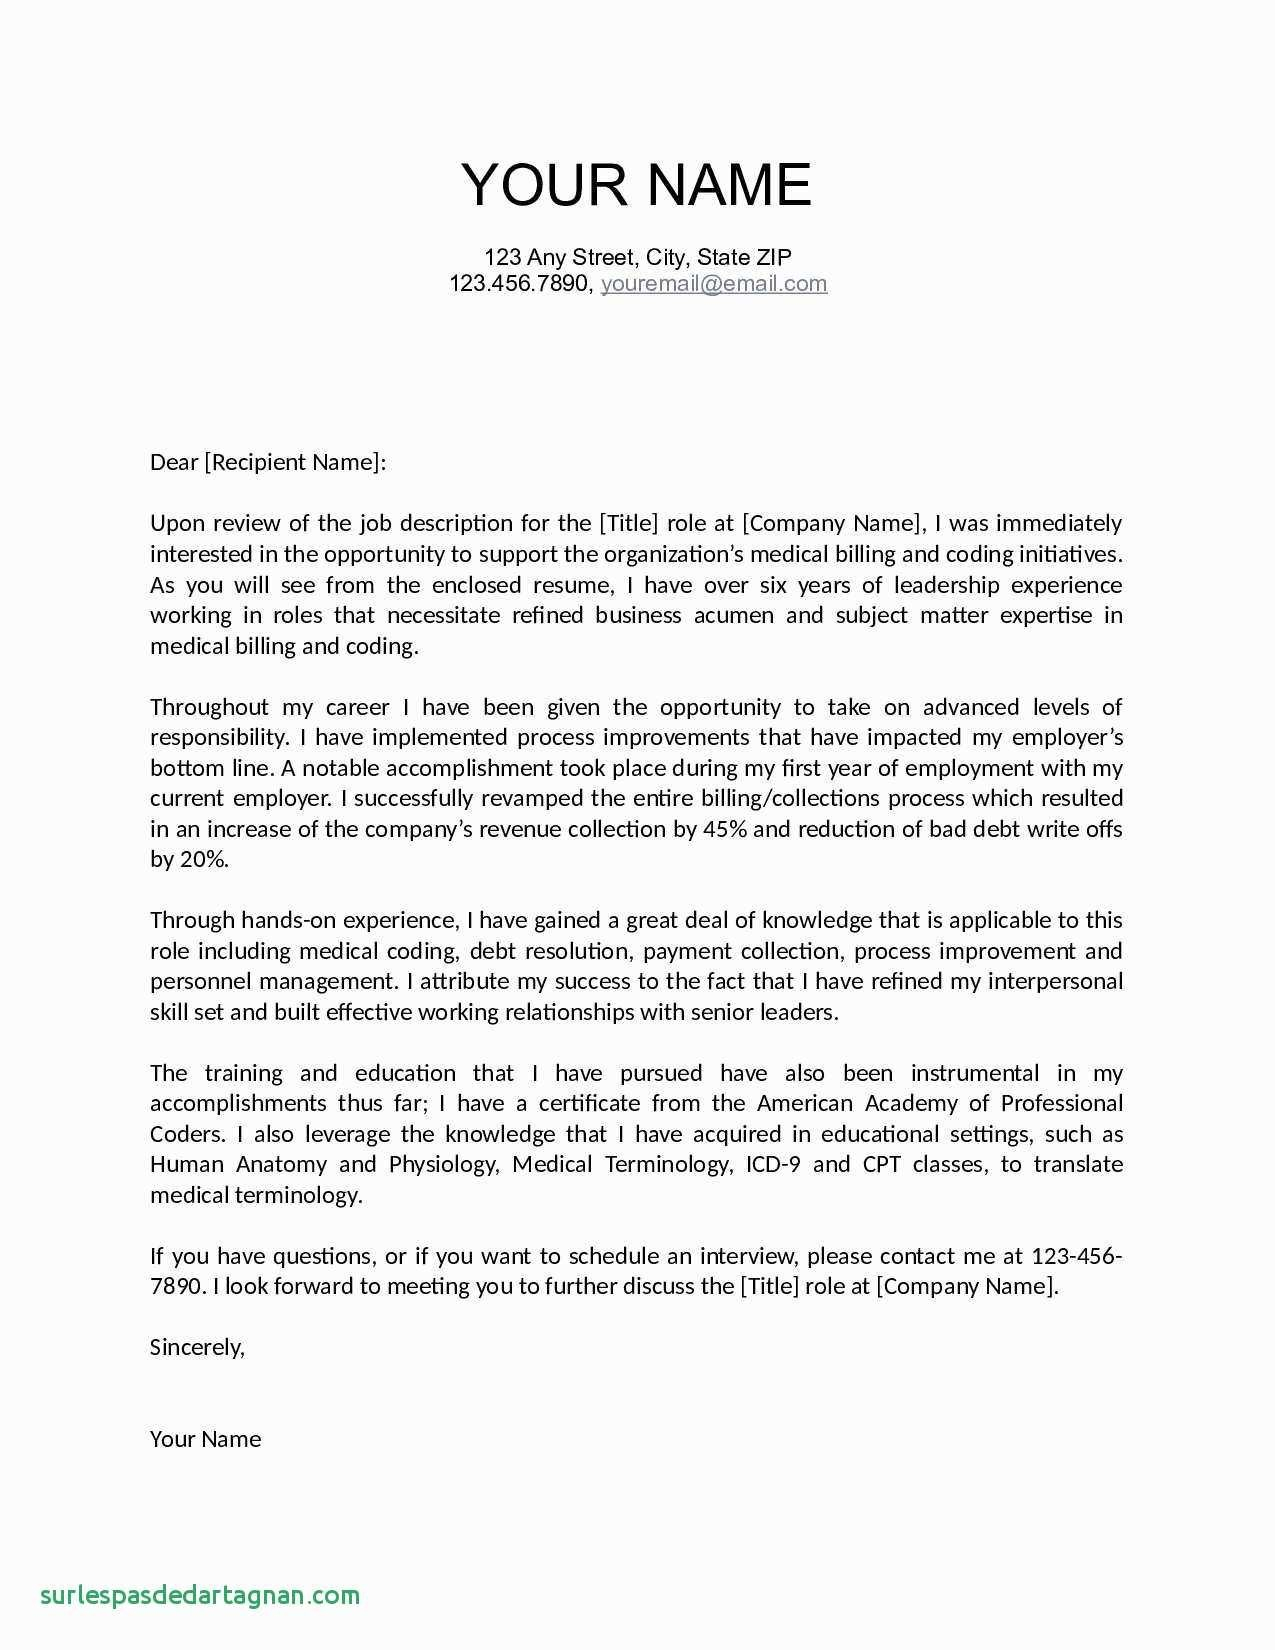 How to Create A Cover Letter Template - How to Make Resume for Job Beautiful Fresh Job Fer Letter Template